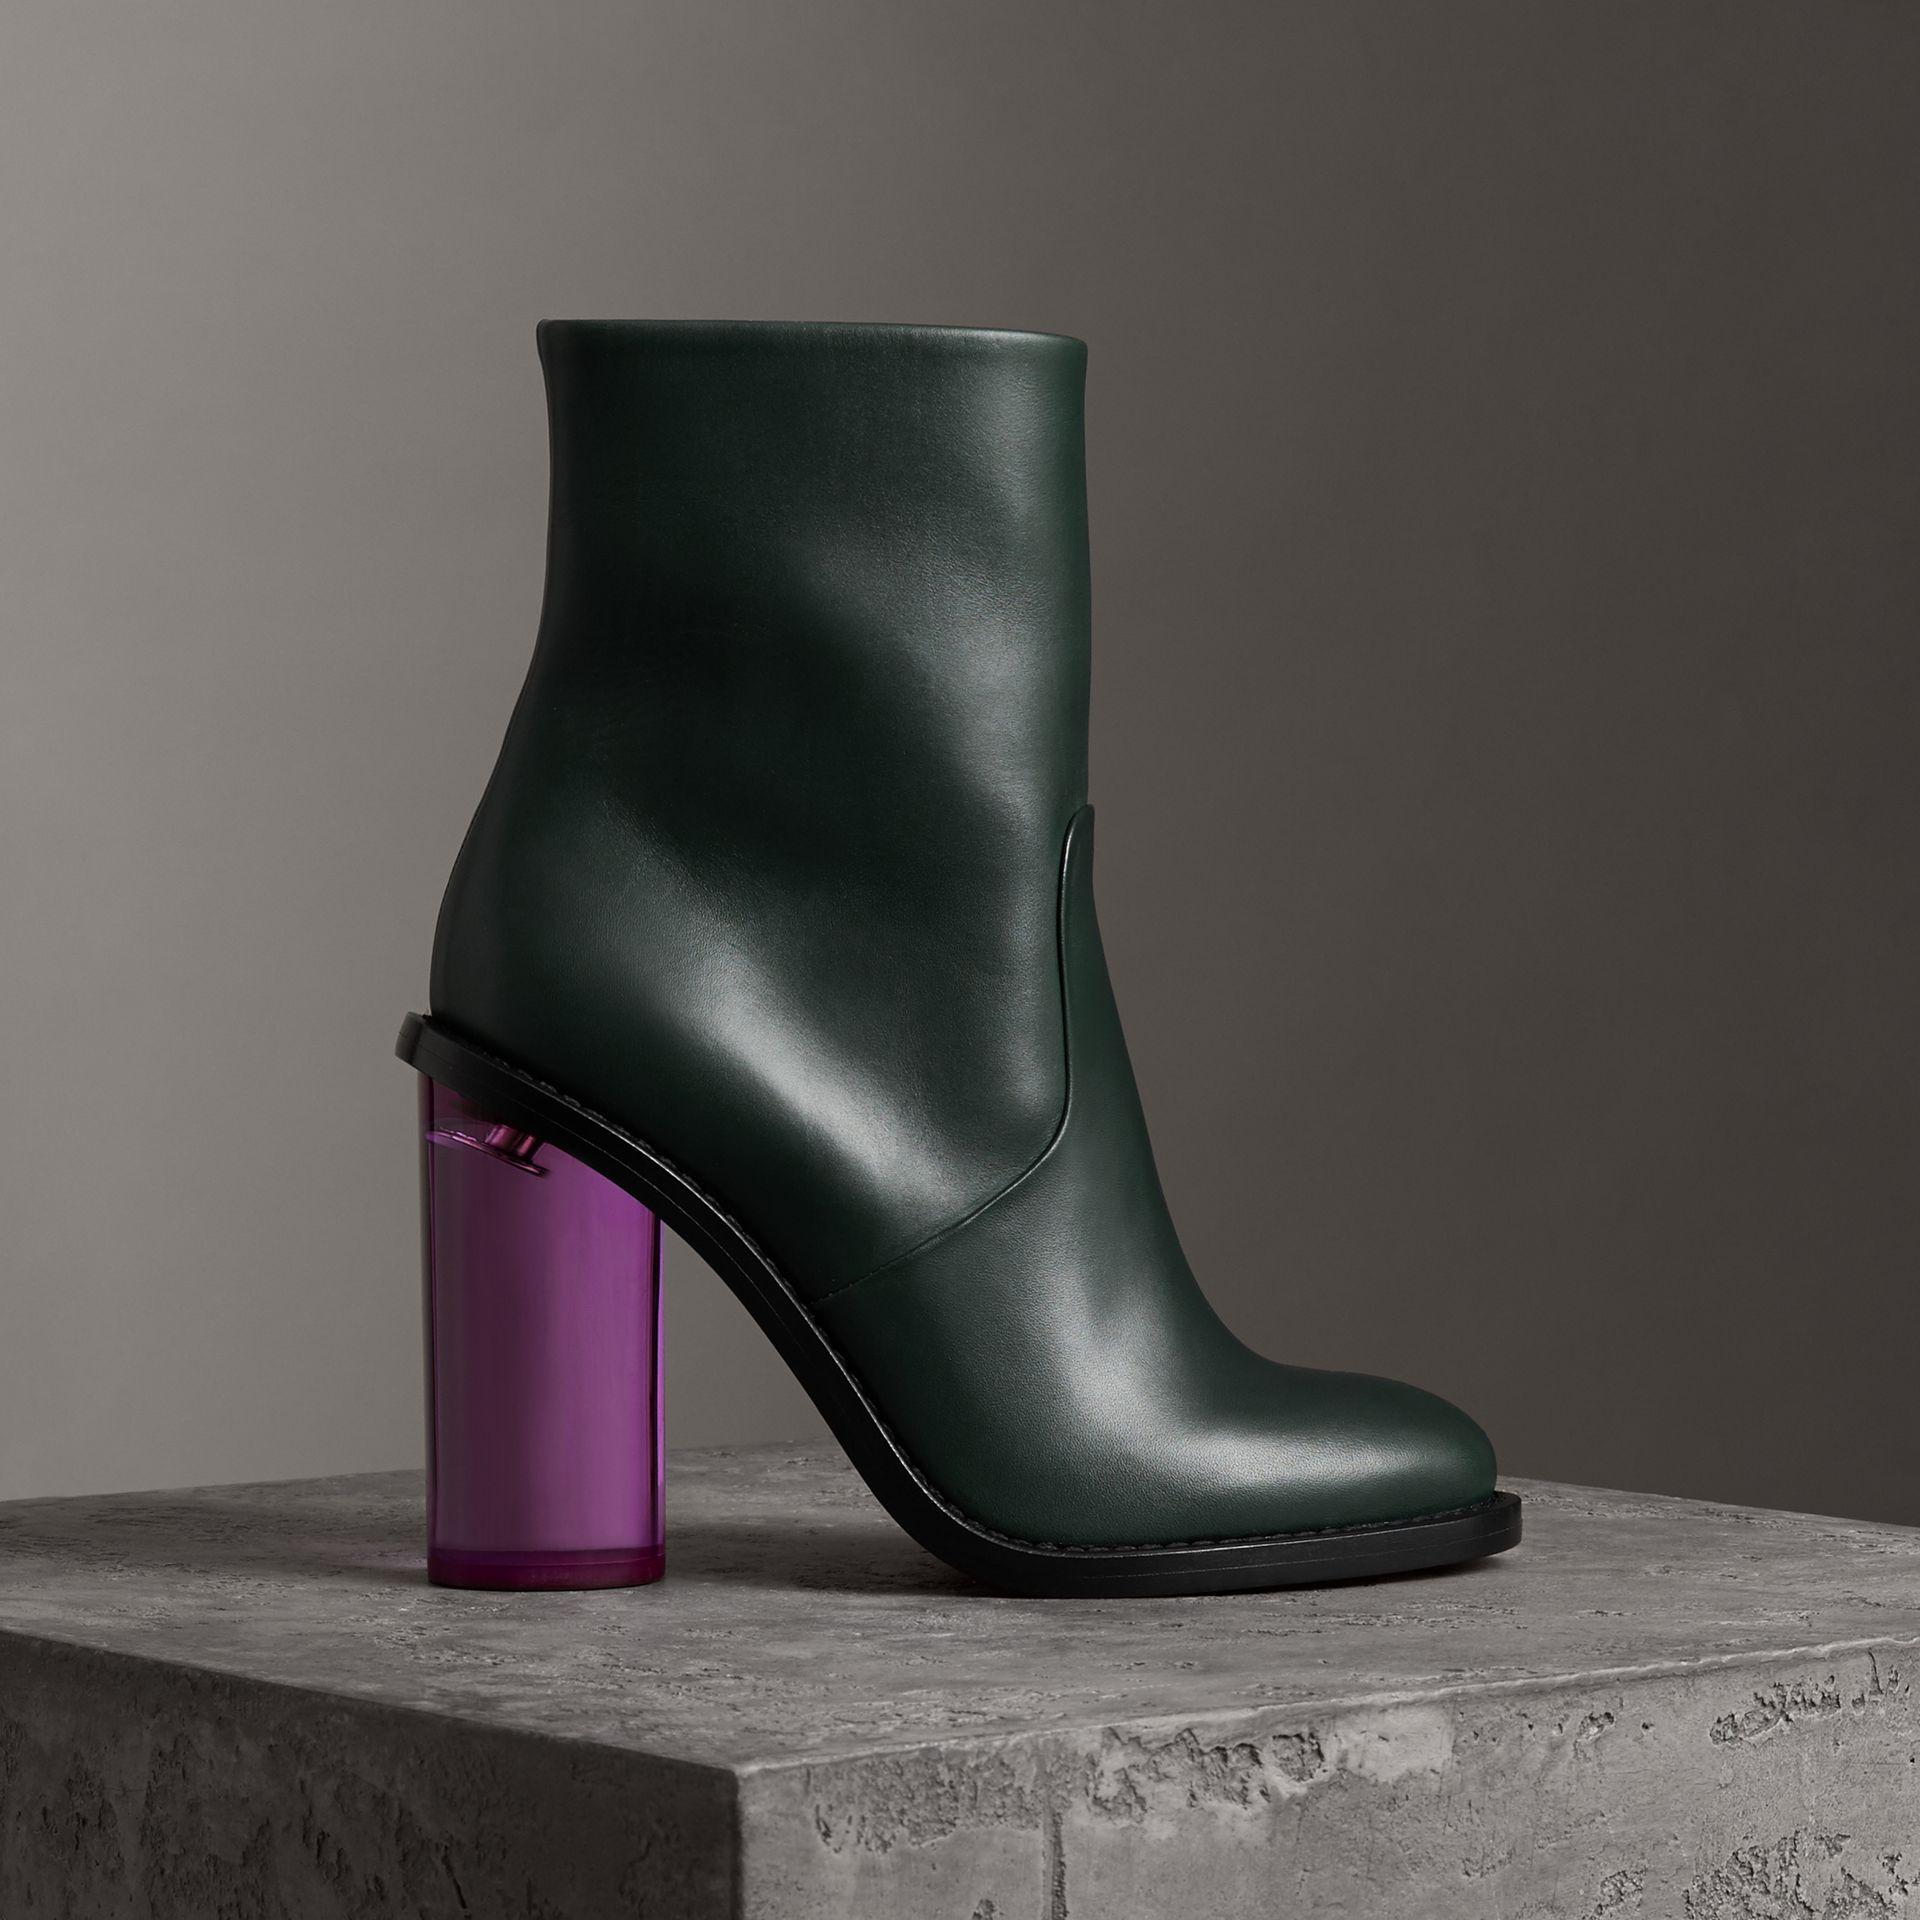 070ae71b5405 Burberry Two-Tone Leather High Block-Heel Boots In Dark Forest Green ...